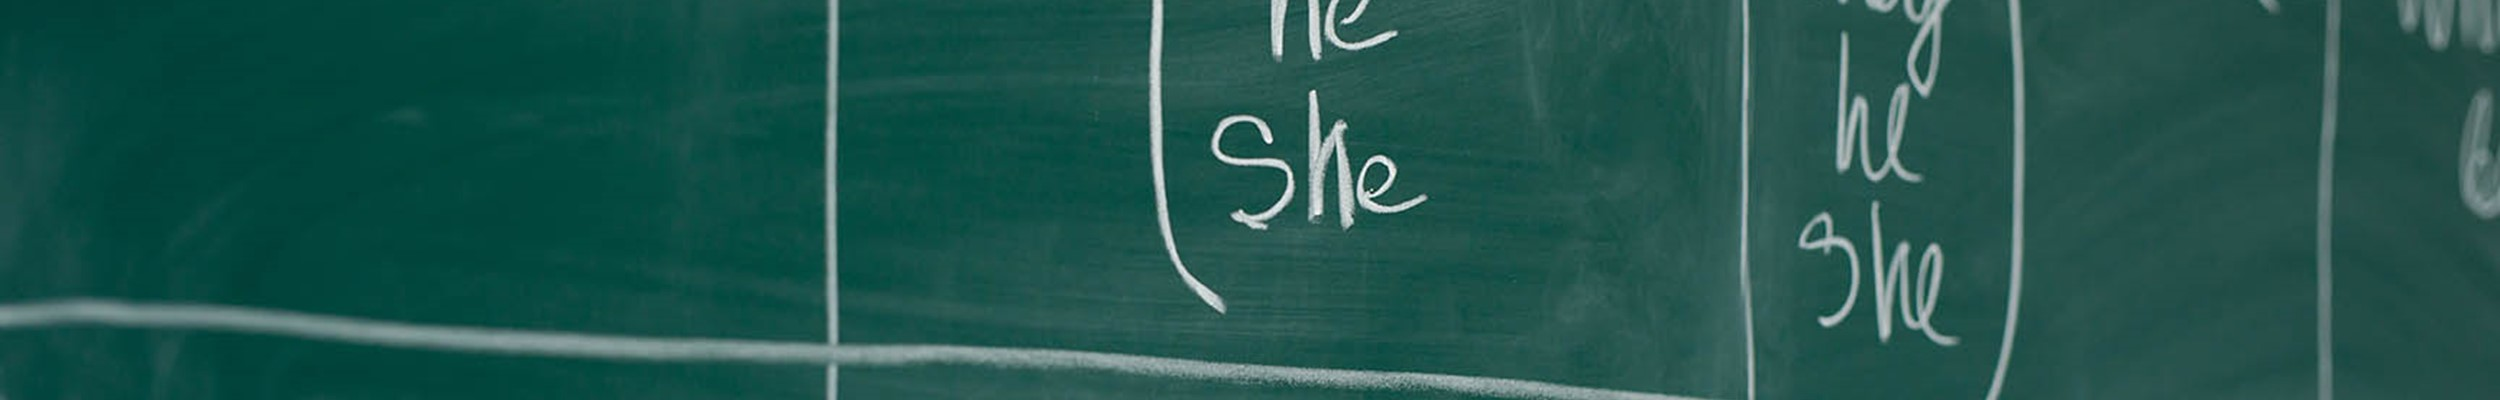 Writing in chalk on chalkboard